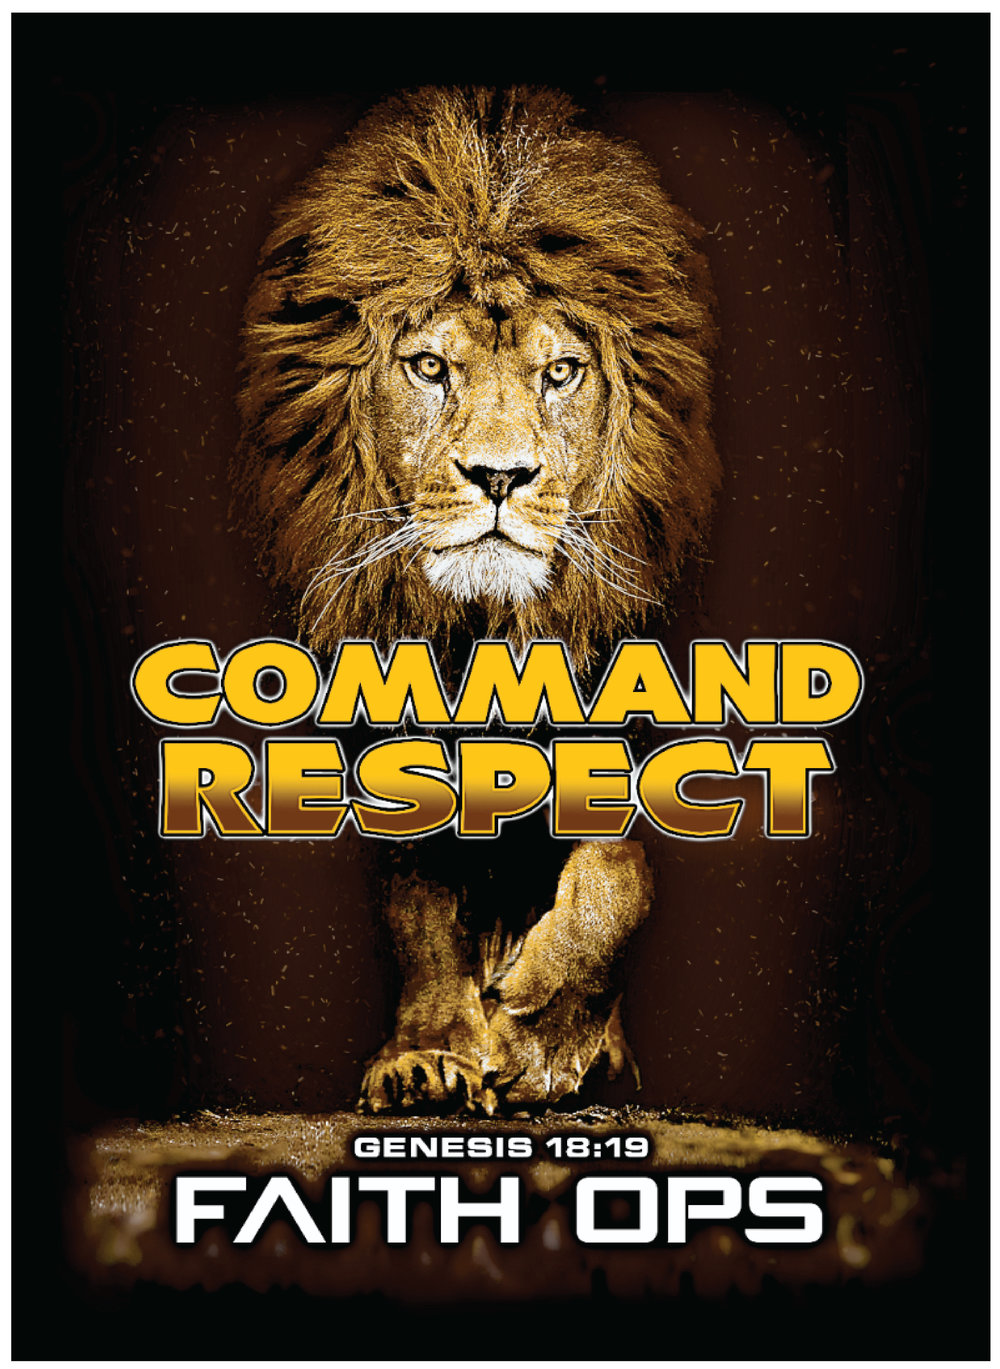 Intense Camp Free T-shirt w/ Registration - Register now for Intense Camp 2019 (March 14-16) by December 16th and receive a free Command Respect T-shirt while supplies last. Click here to register today